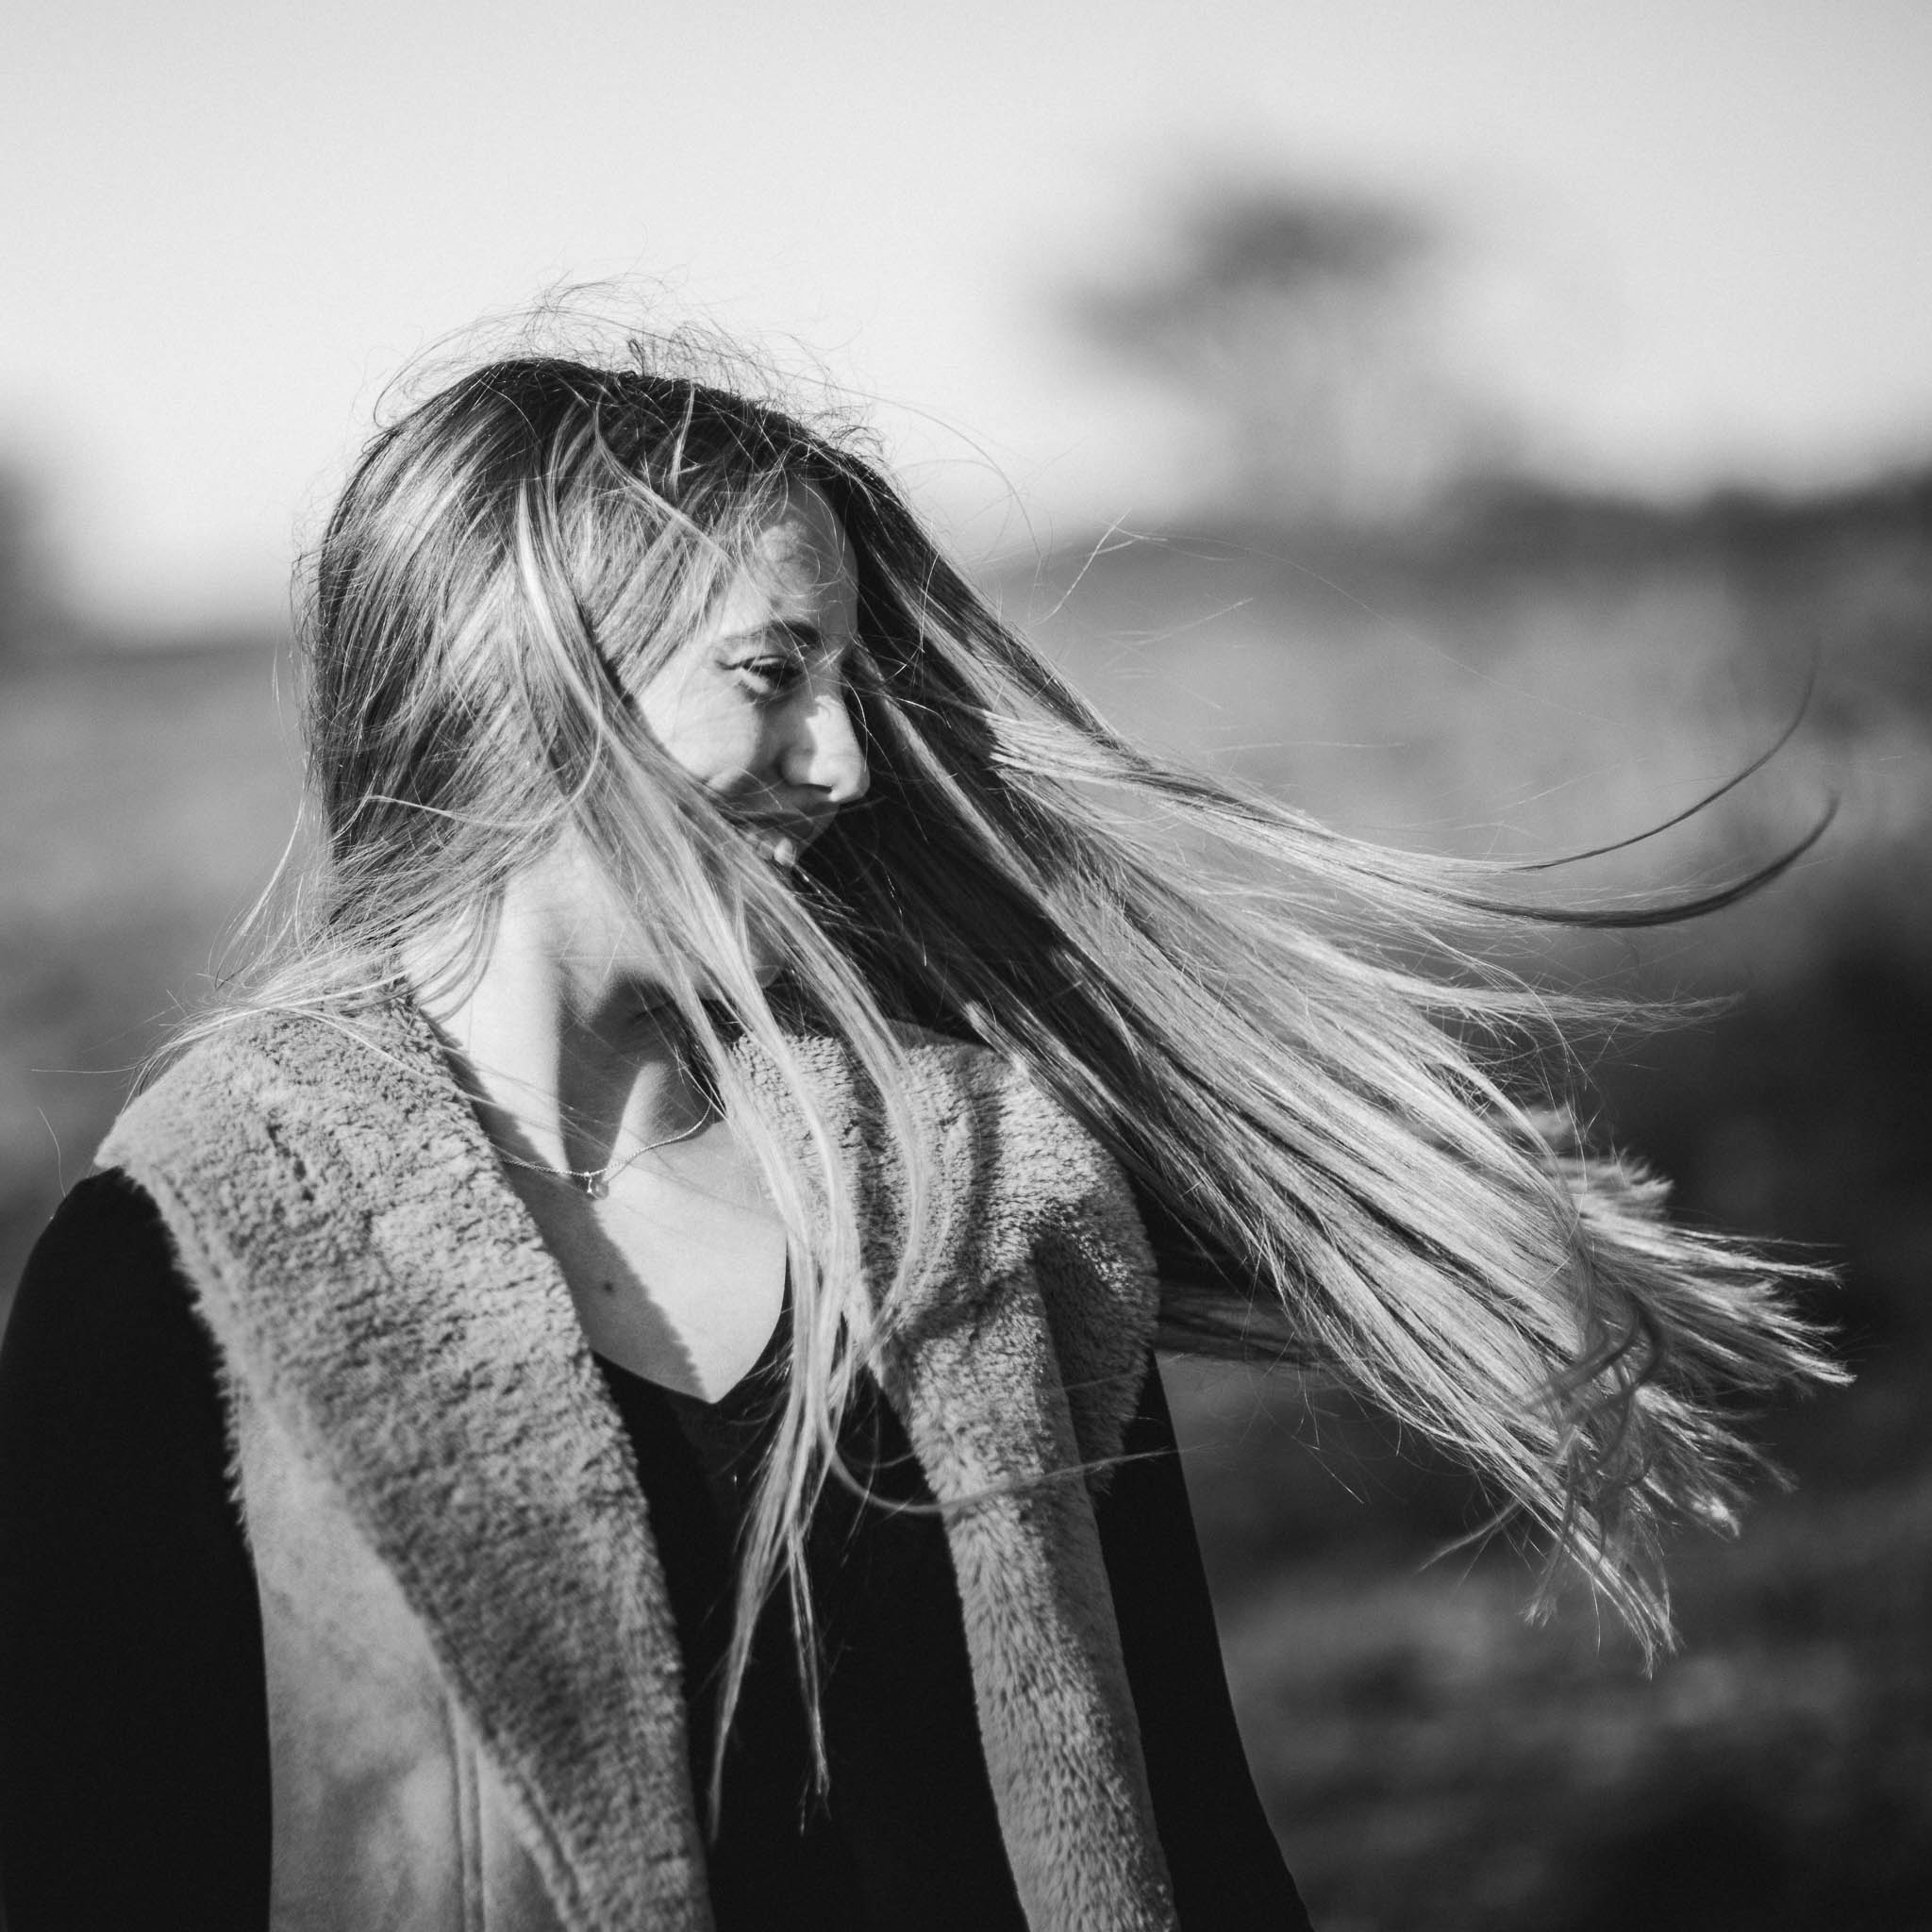 Girl with long hair swirling in the wind.jpg